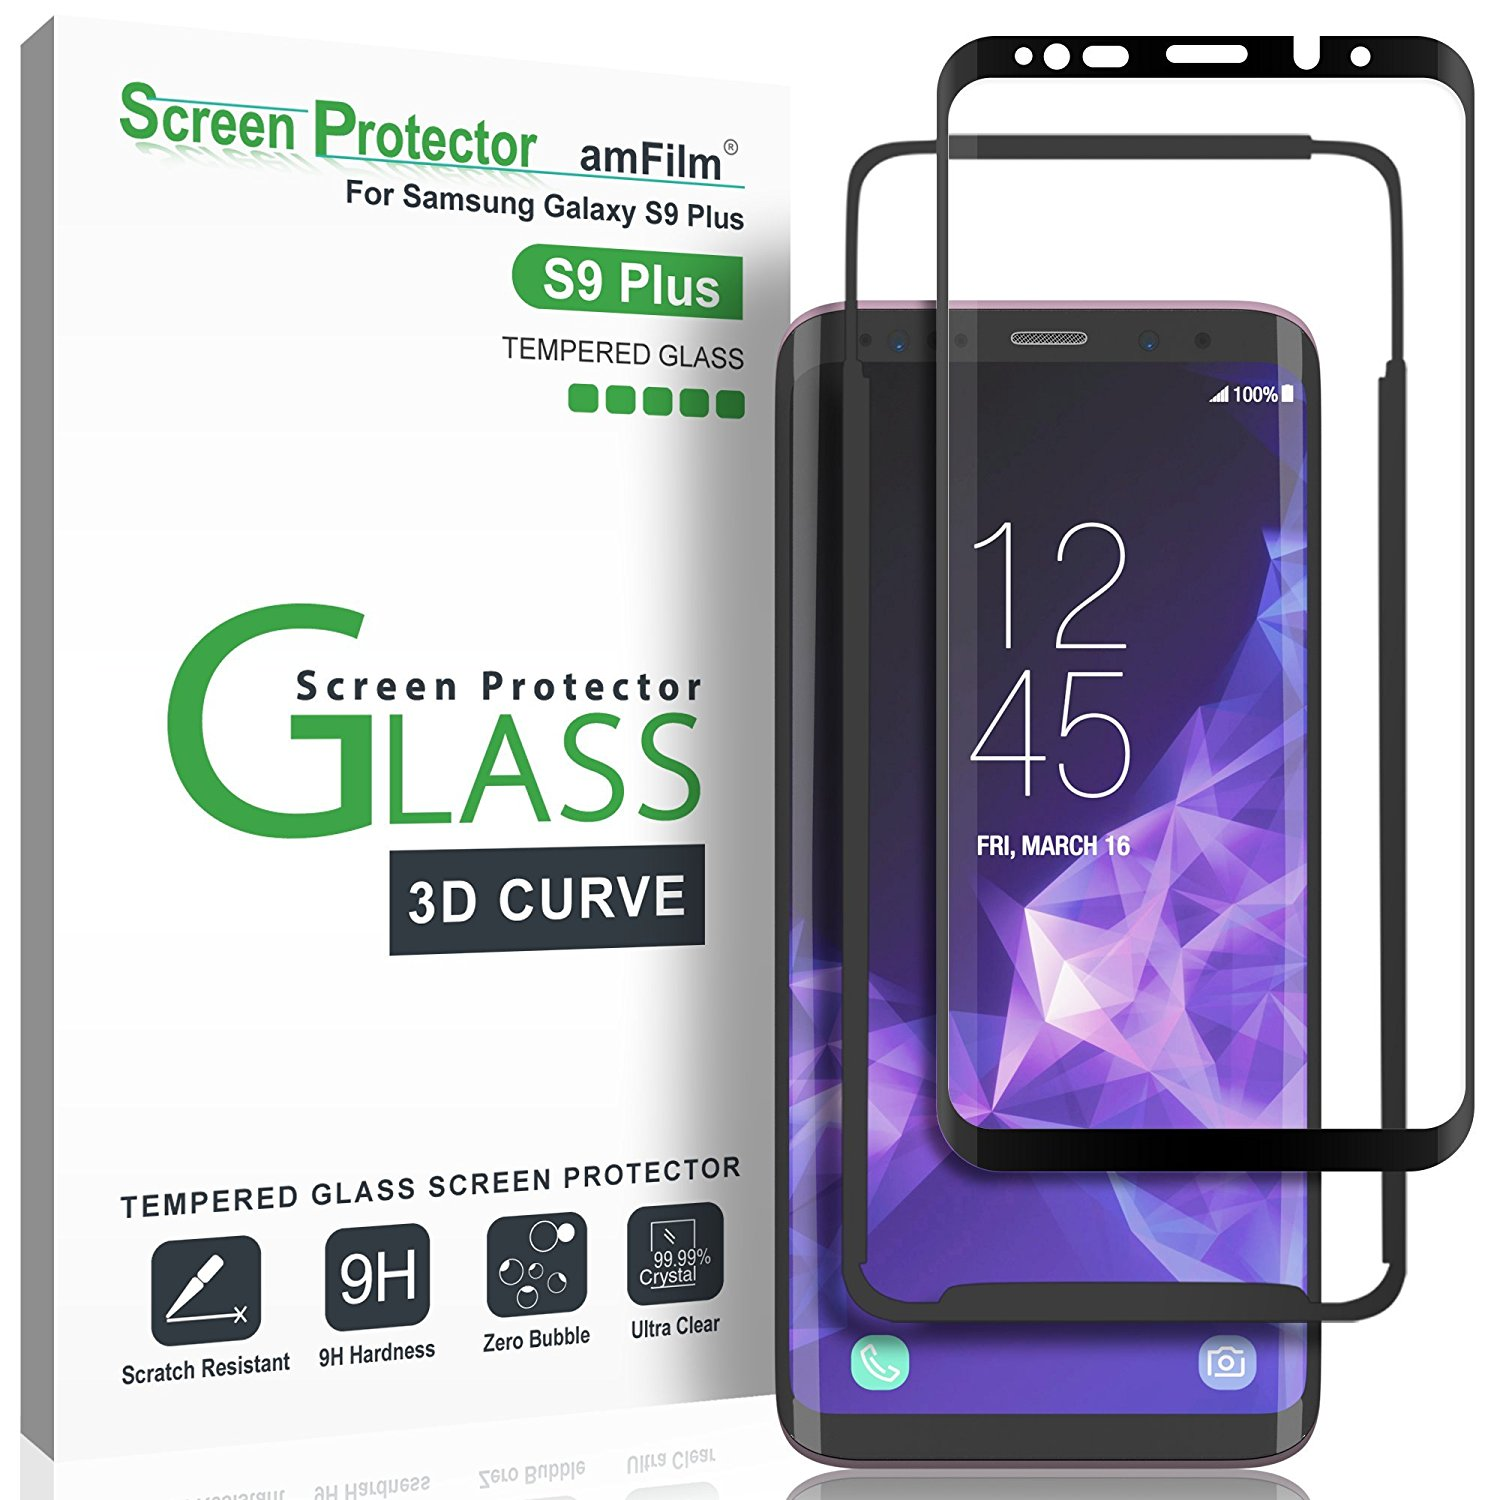 amFilm Galaxy S9 Plus Screen Protector, Full Cover (3D Curved) Tempered Glass with Dot Matrix for Samsung Galaxy S9 Plus (1 Pack, Black)